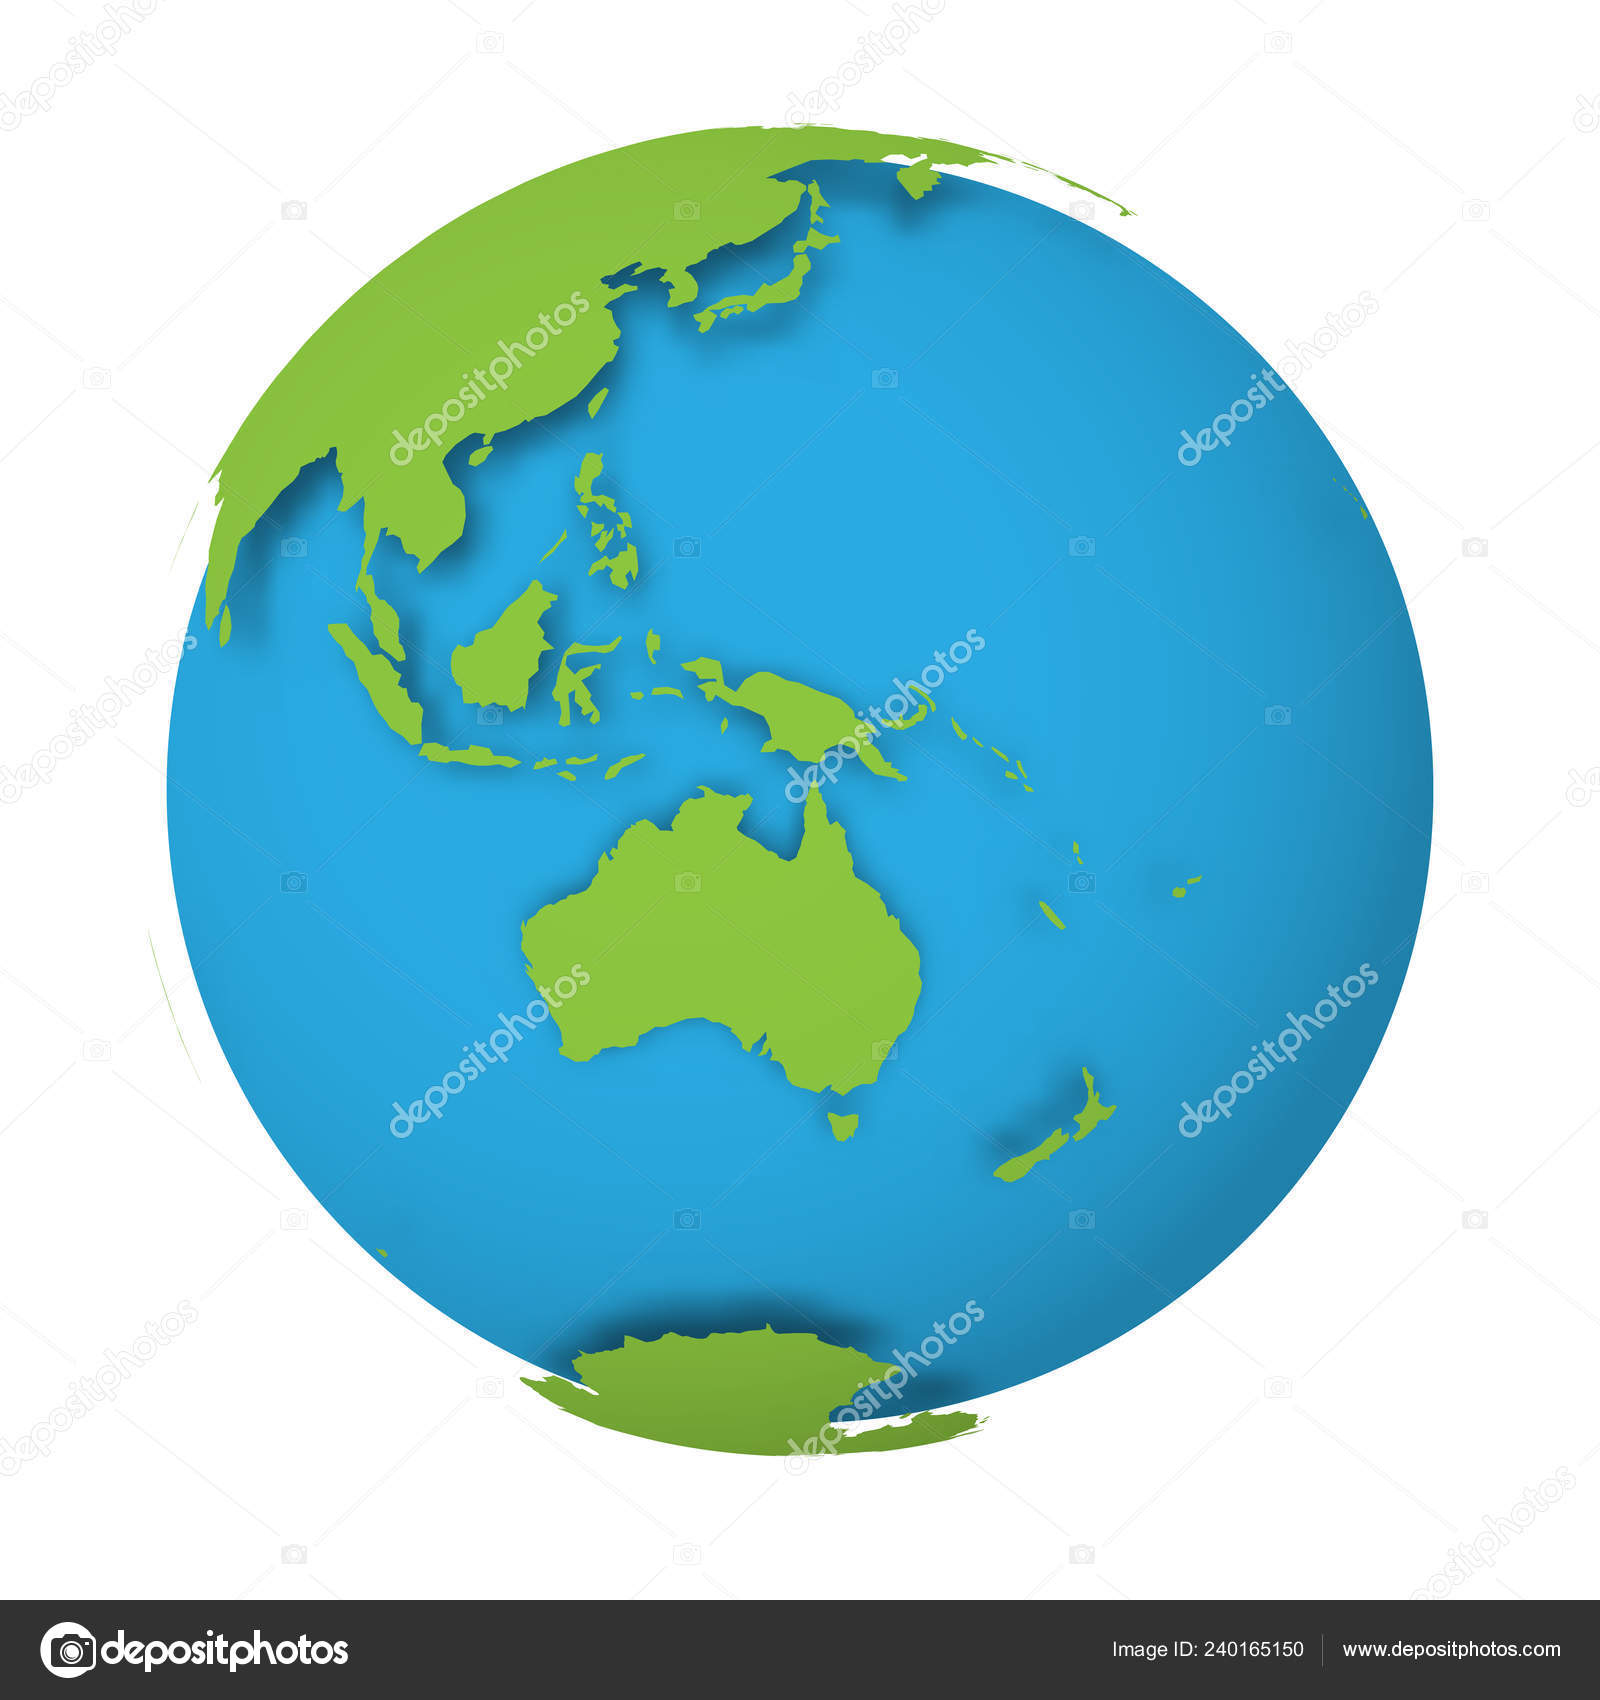 Natural Earth Globe 3d World Map With Green Lands Dropping Shadows